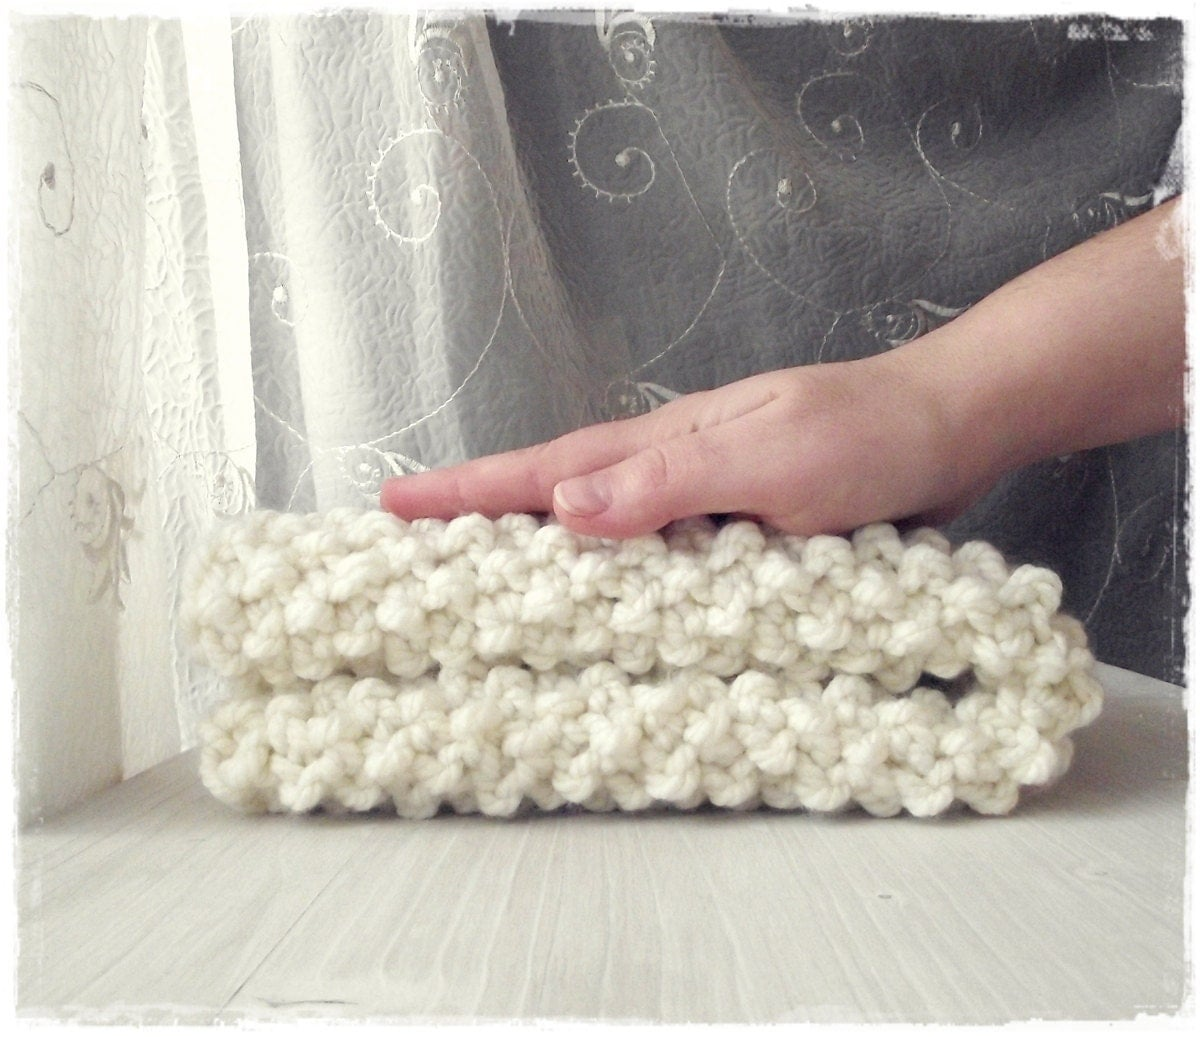 Free Shipping White Cream Mini Baby Blanket, Chunky Hand knit Baby Photo Prop Blanket, Security Blanket, Chunky Knit Blanket - ZucchiniIsland